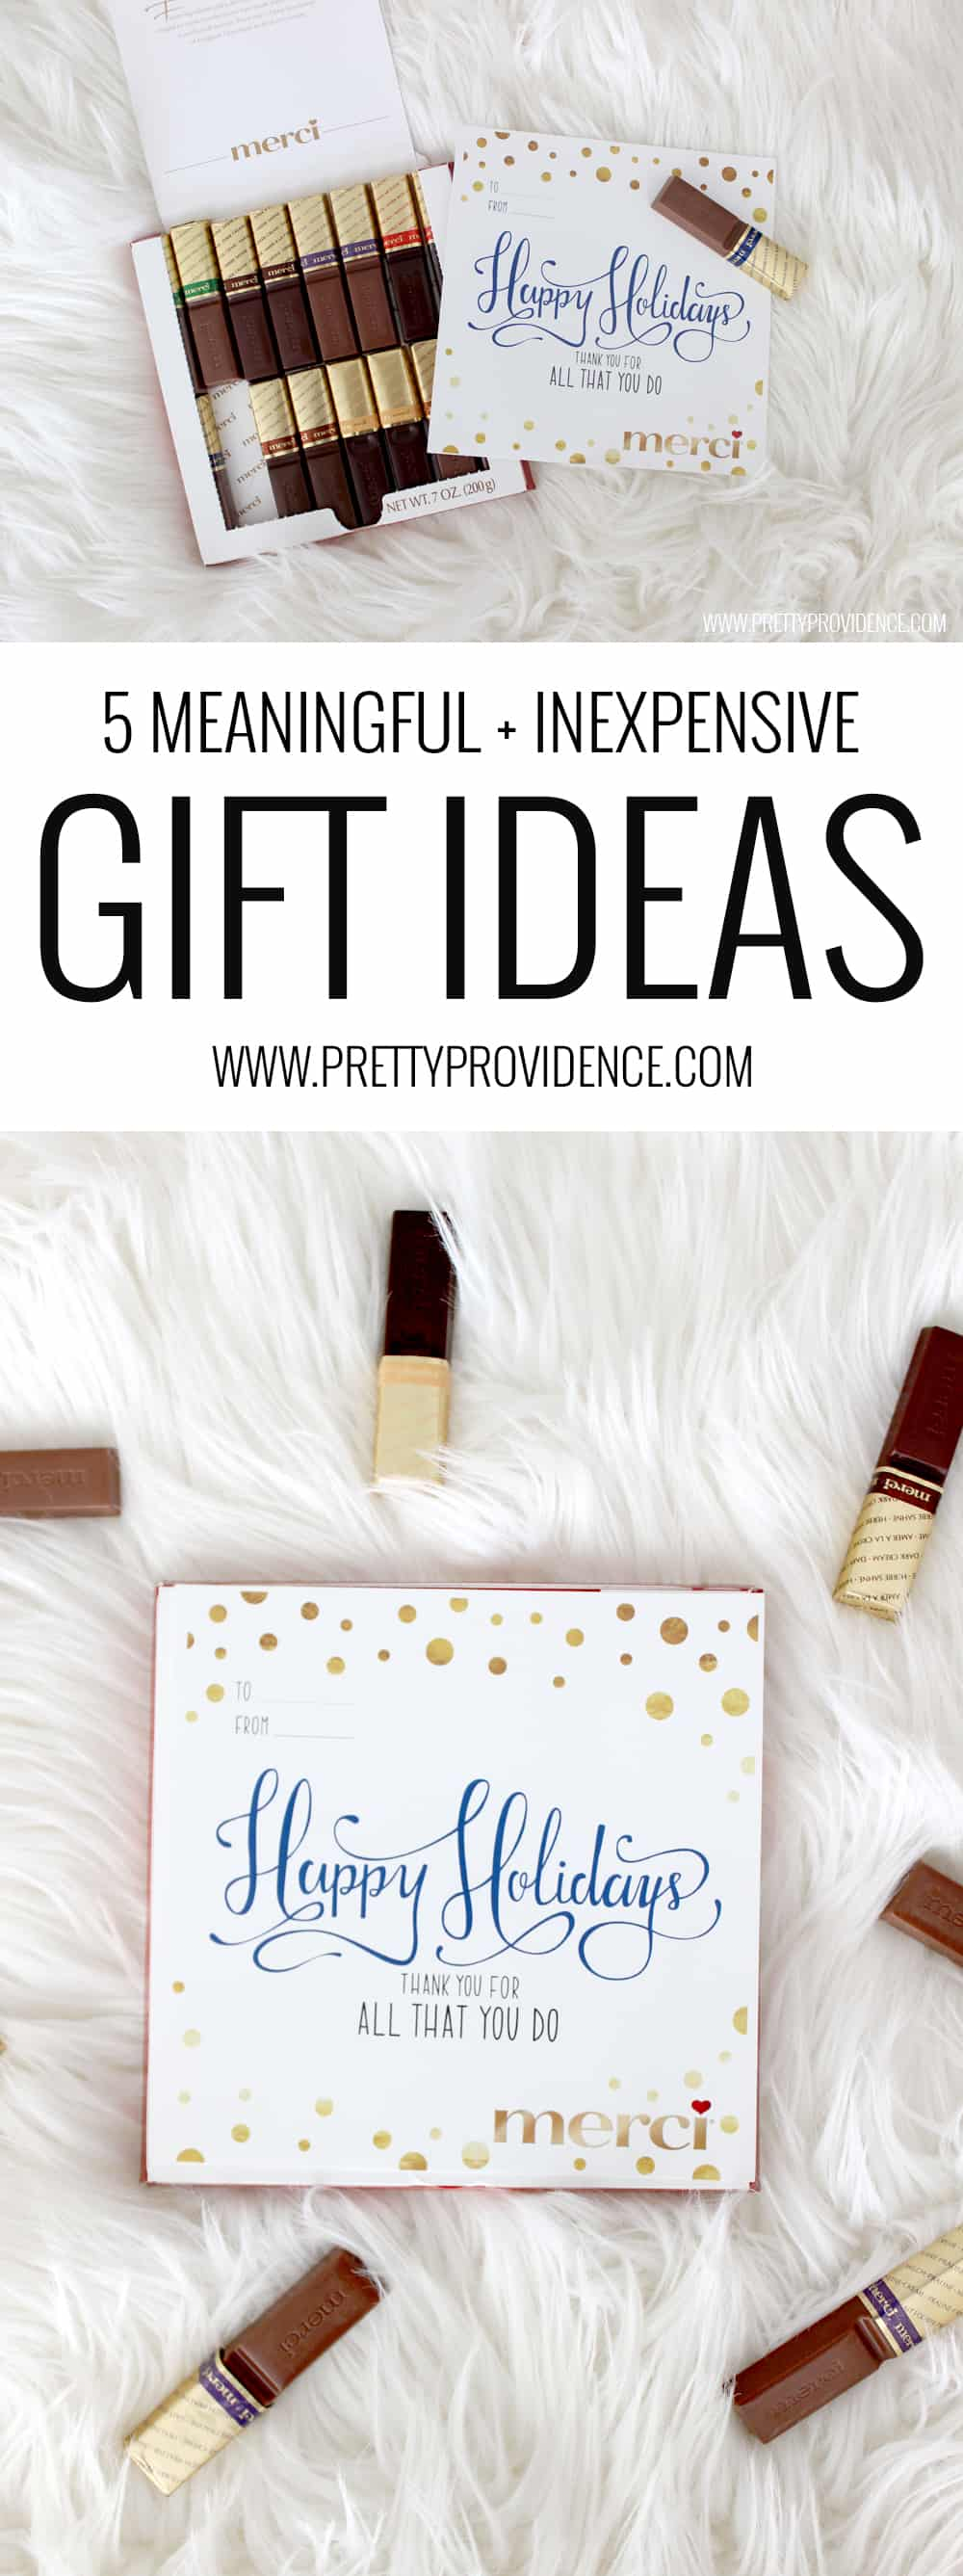 Five meaningful and inexpensive gift ideas! There are some really great ideas in here- I would love if someone did any one of these for me!